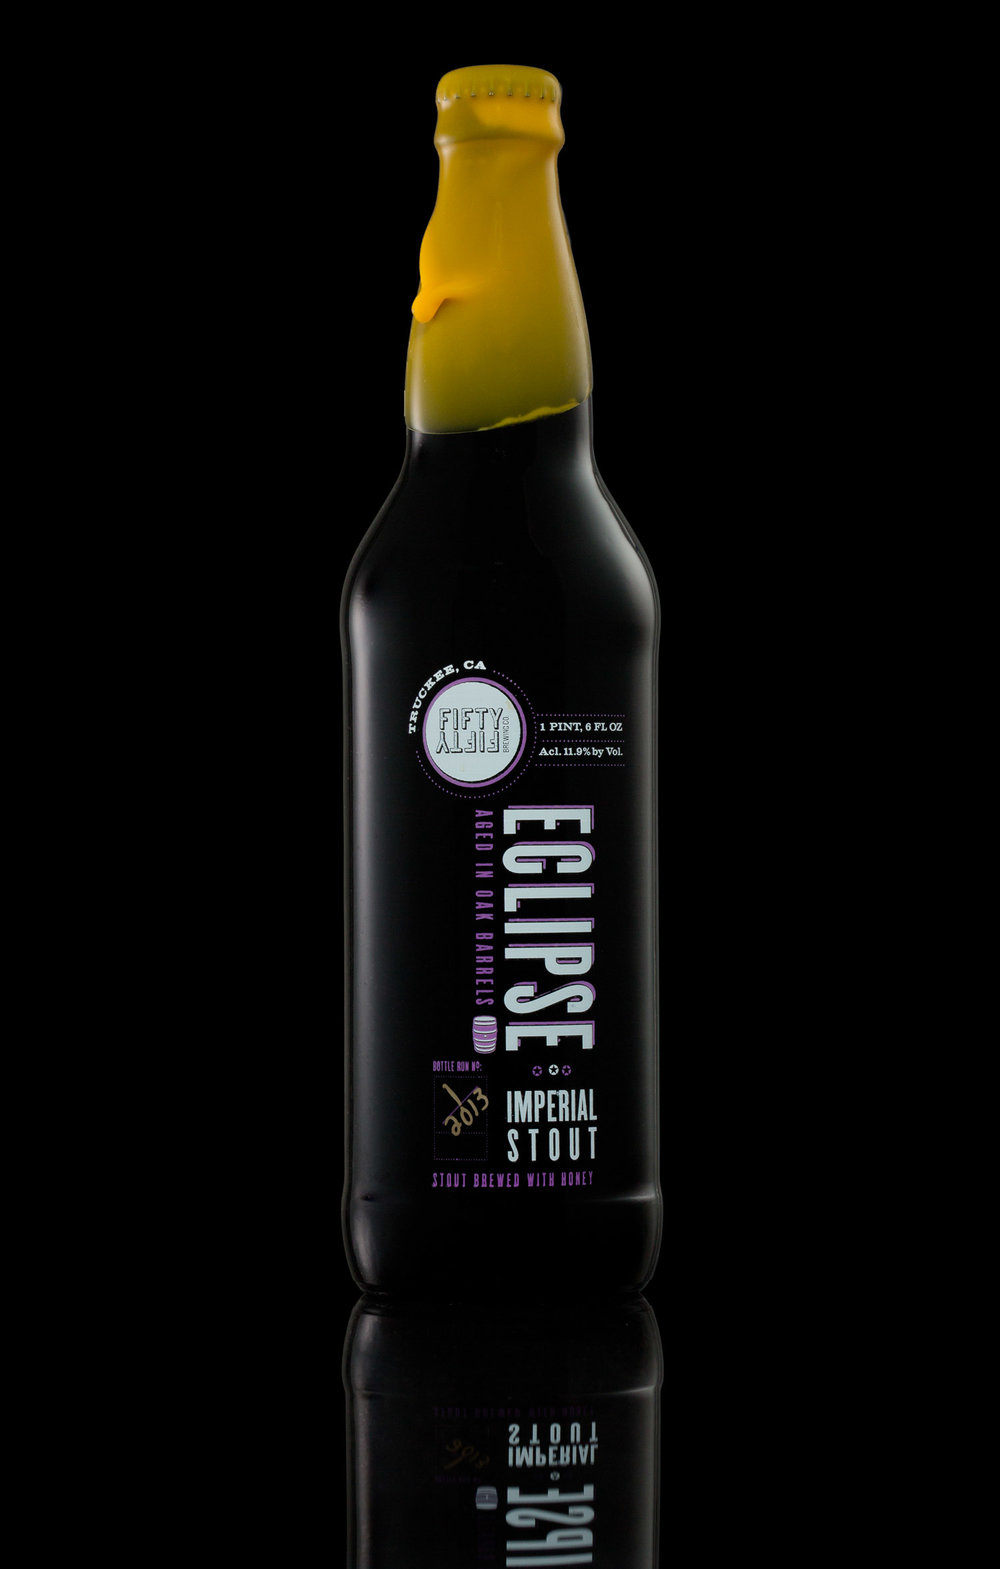 Eclipse Imperial Stout by Fifty Fifty Brewing, Truckee, CA. Bottle on black background.